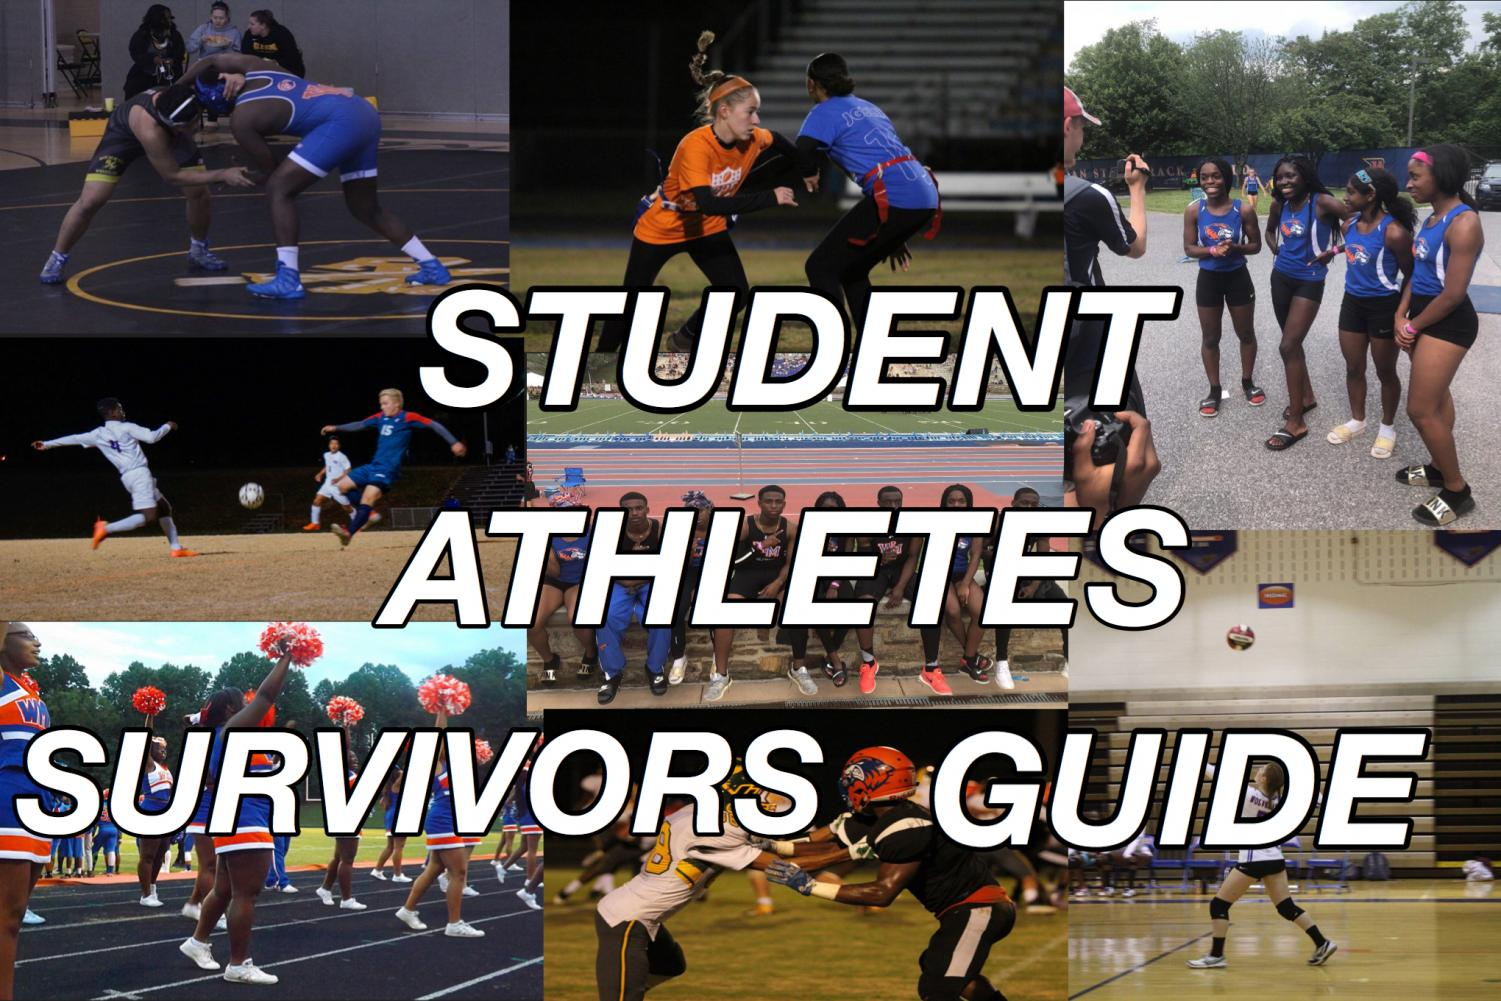 Student athletes face a lot of challenges, but Amelia's Burton's guide can help them stay on track.